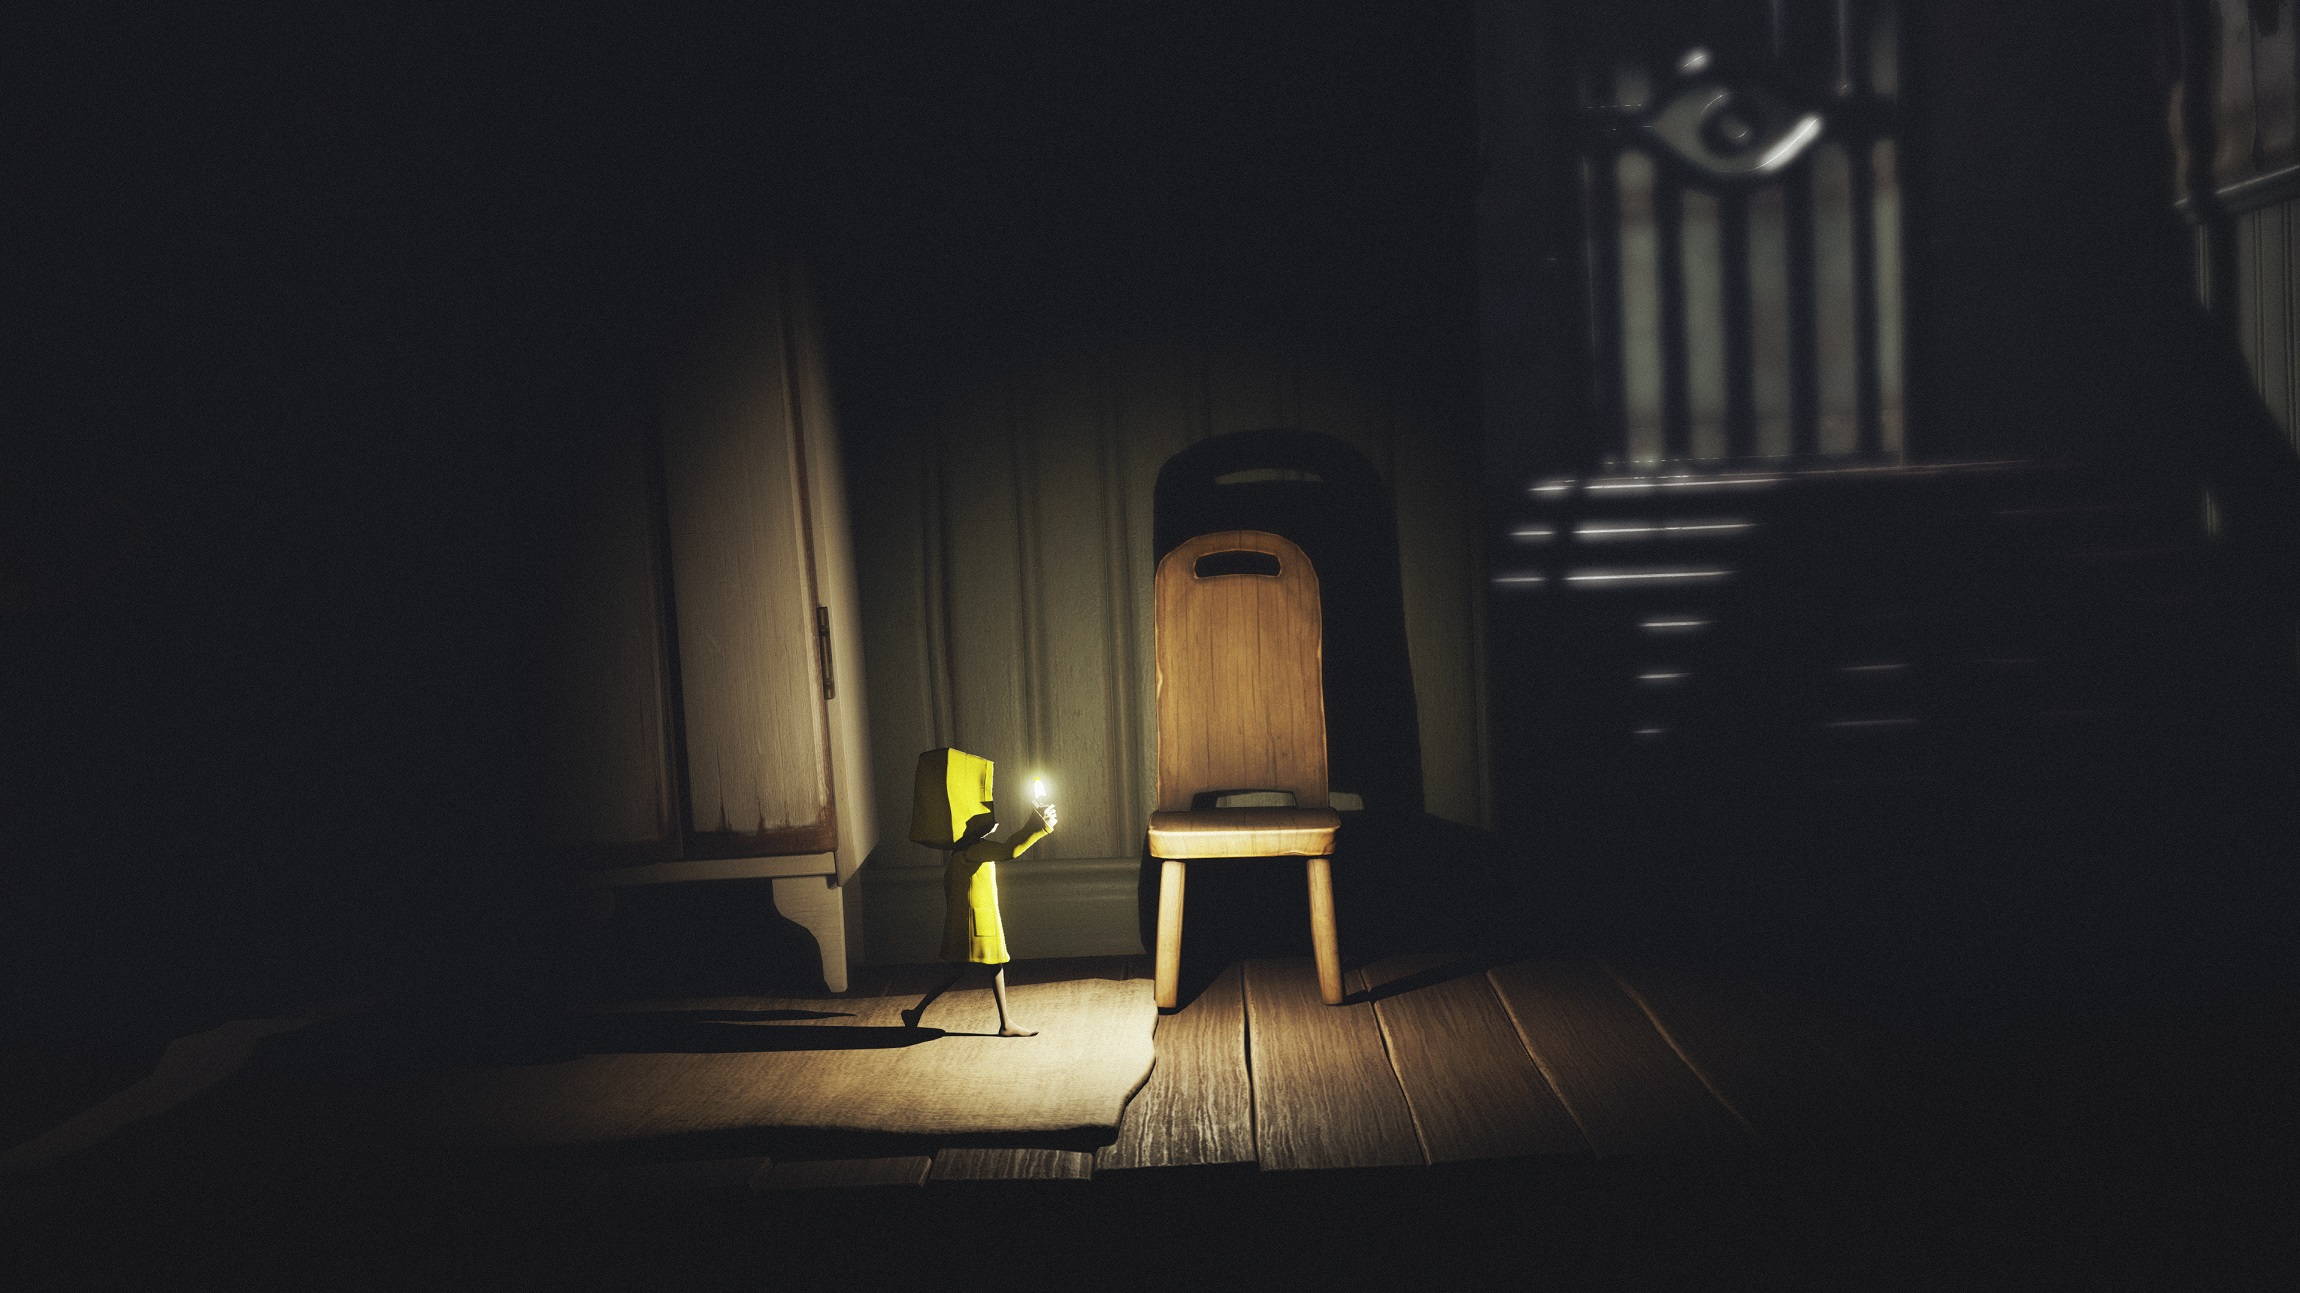 Six eventually finds her way inside the quarters belonging to the mysterious Lady in Little Nightmares.